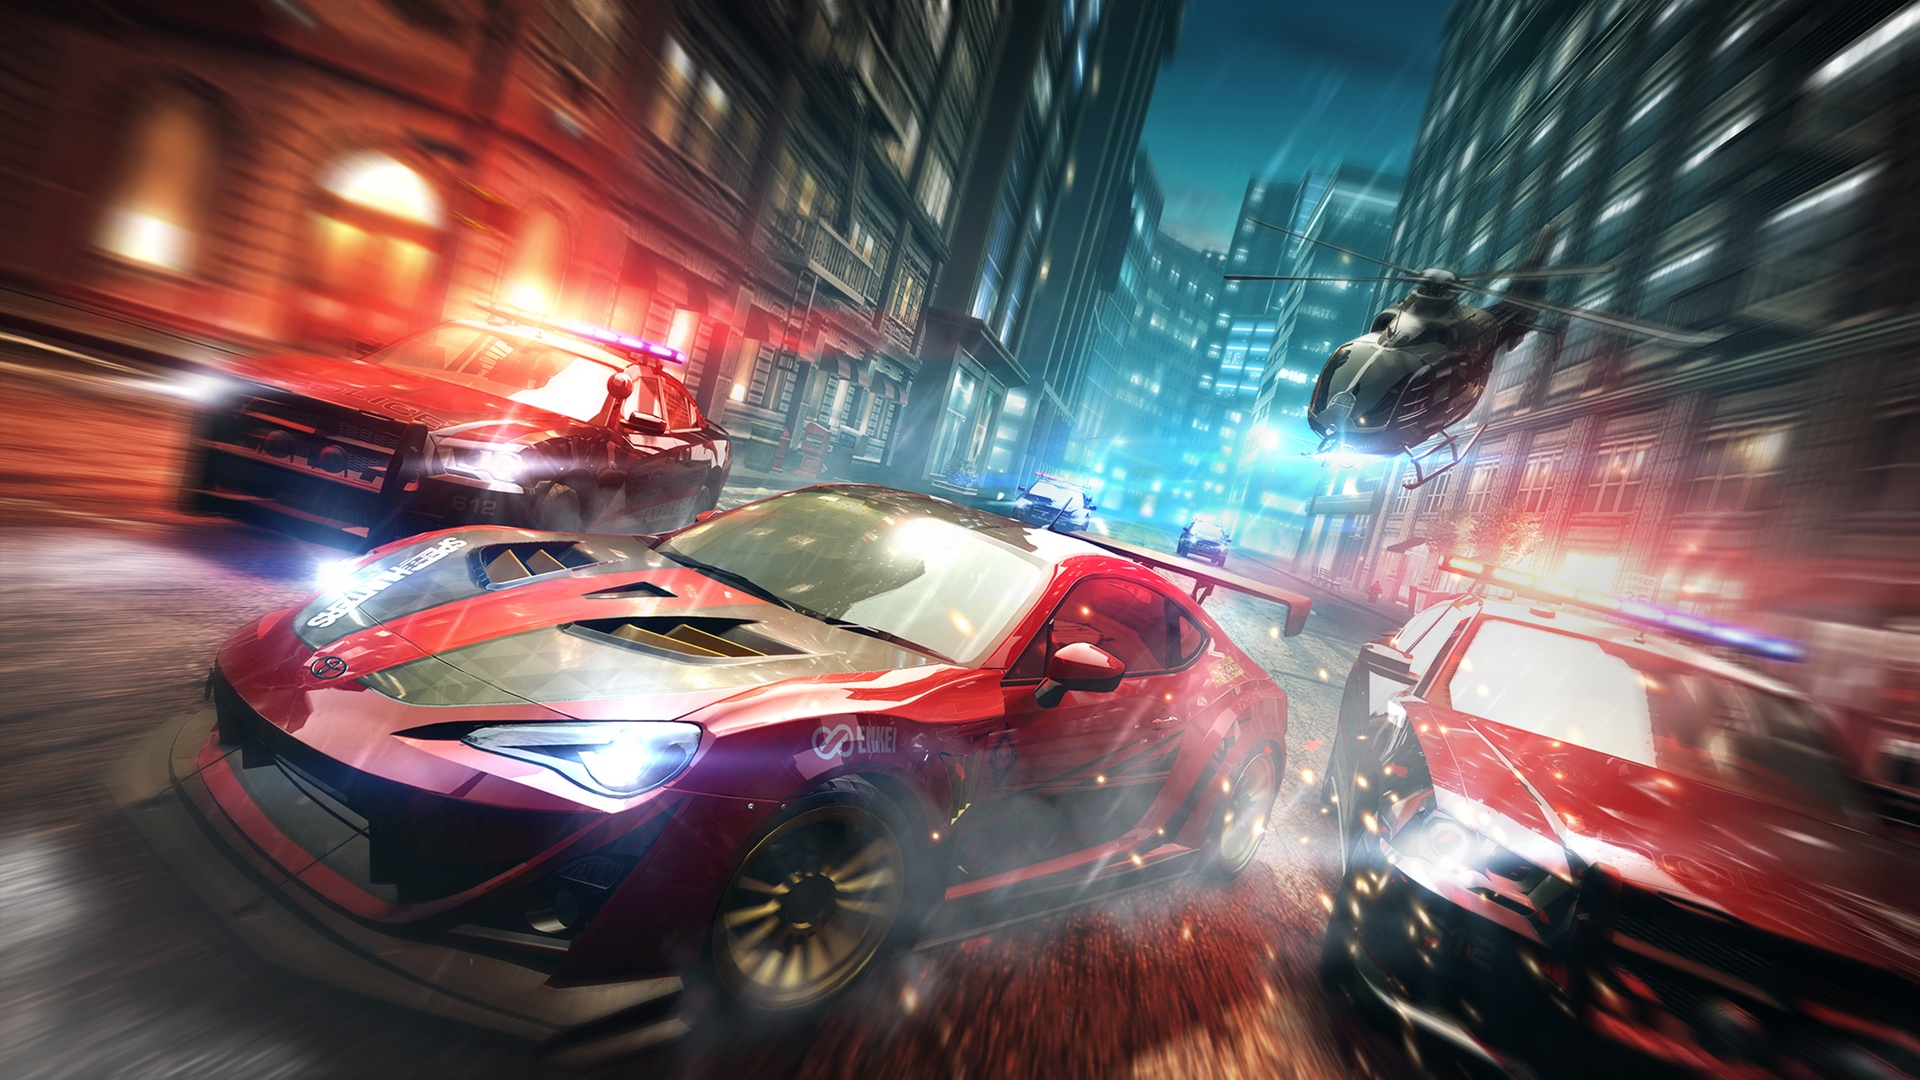 Best Need For Speed Hd Wallpapers Download With 4k Resolution The Indian Wire